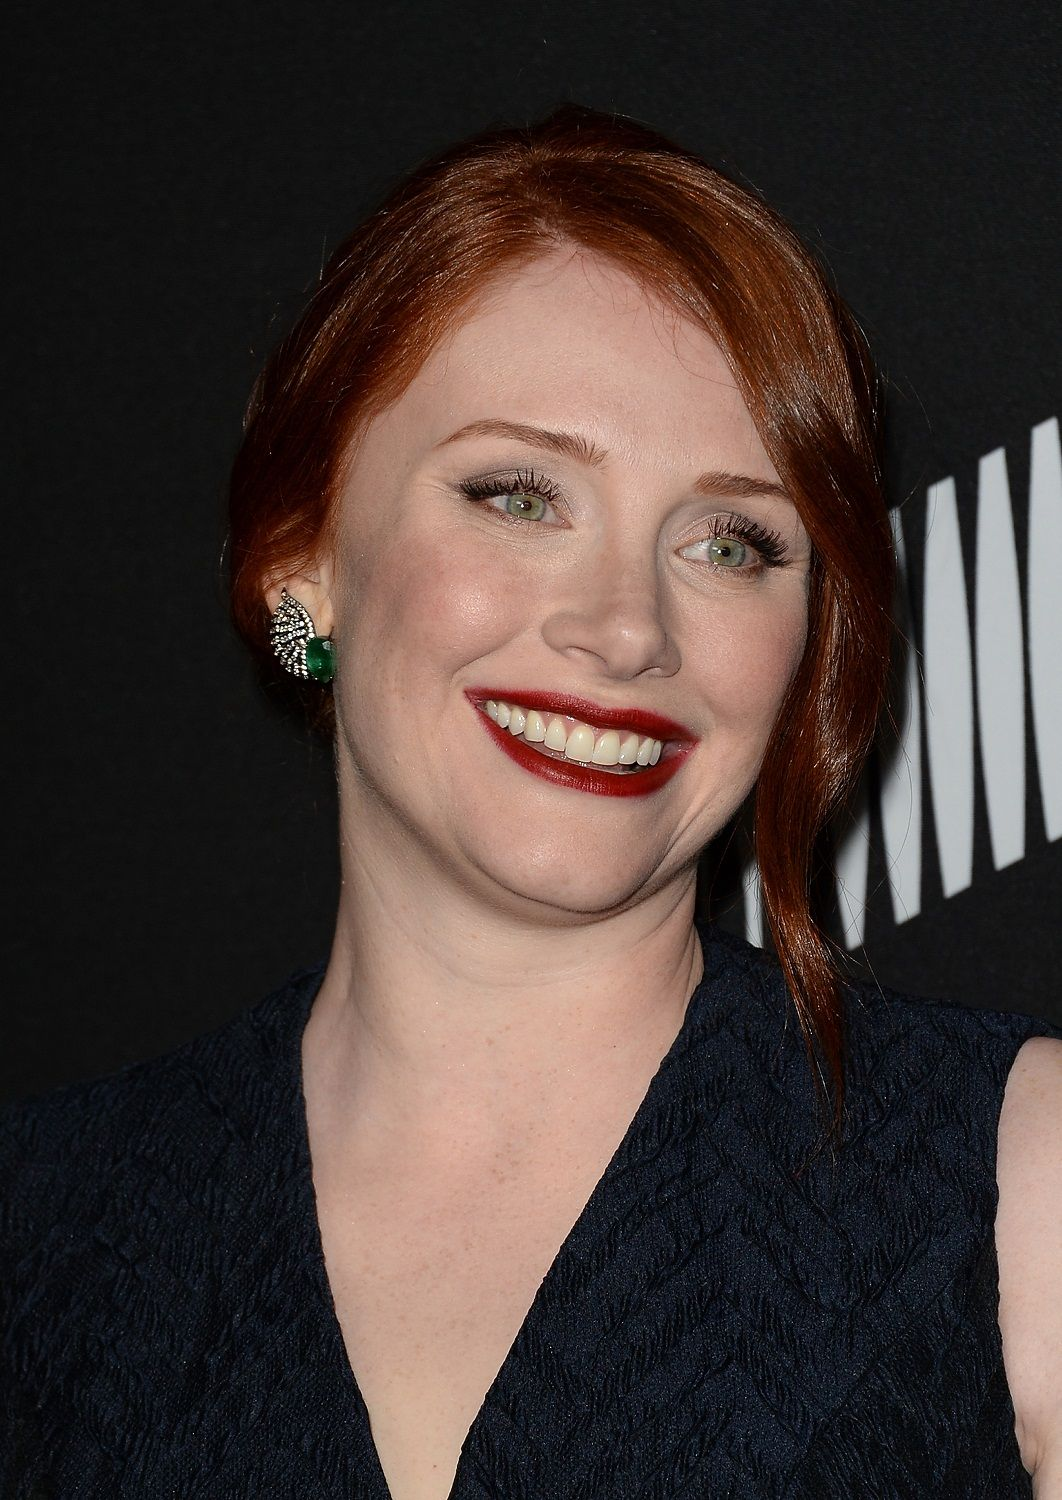 Bryce Dallas Howard At Call Me Crazy A Five Film Premiere At The Pacific Design Center In West Hollywood April Bryce Dallas Howard Party Fashion Celebrities